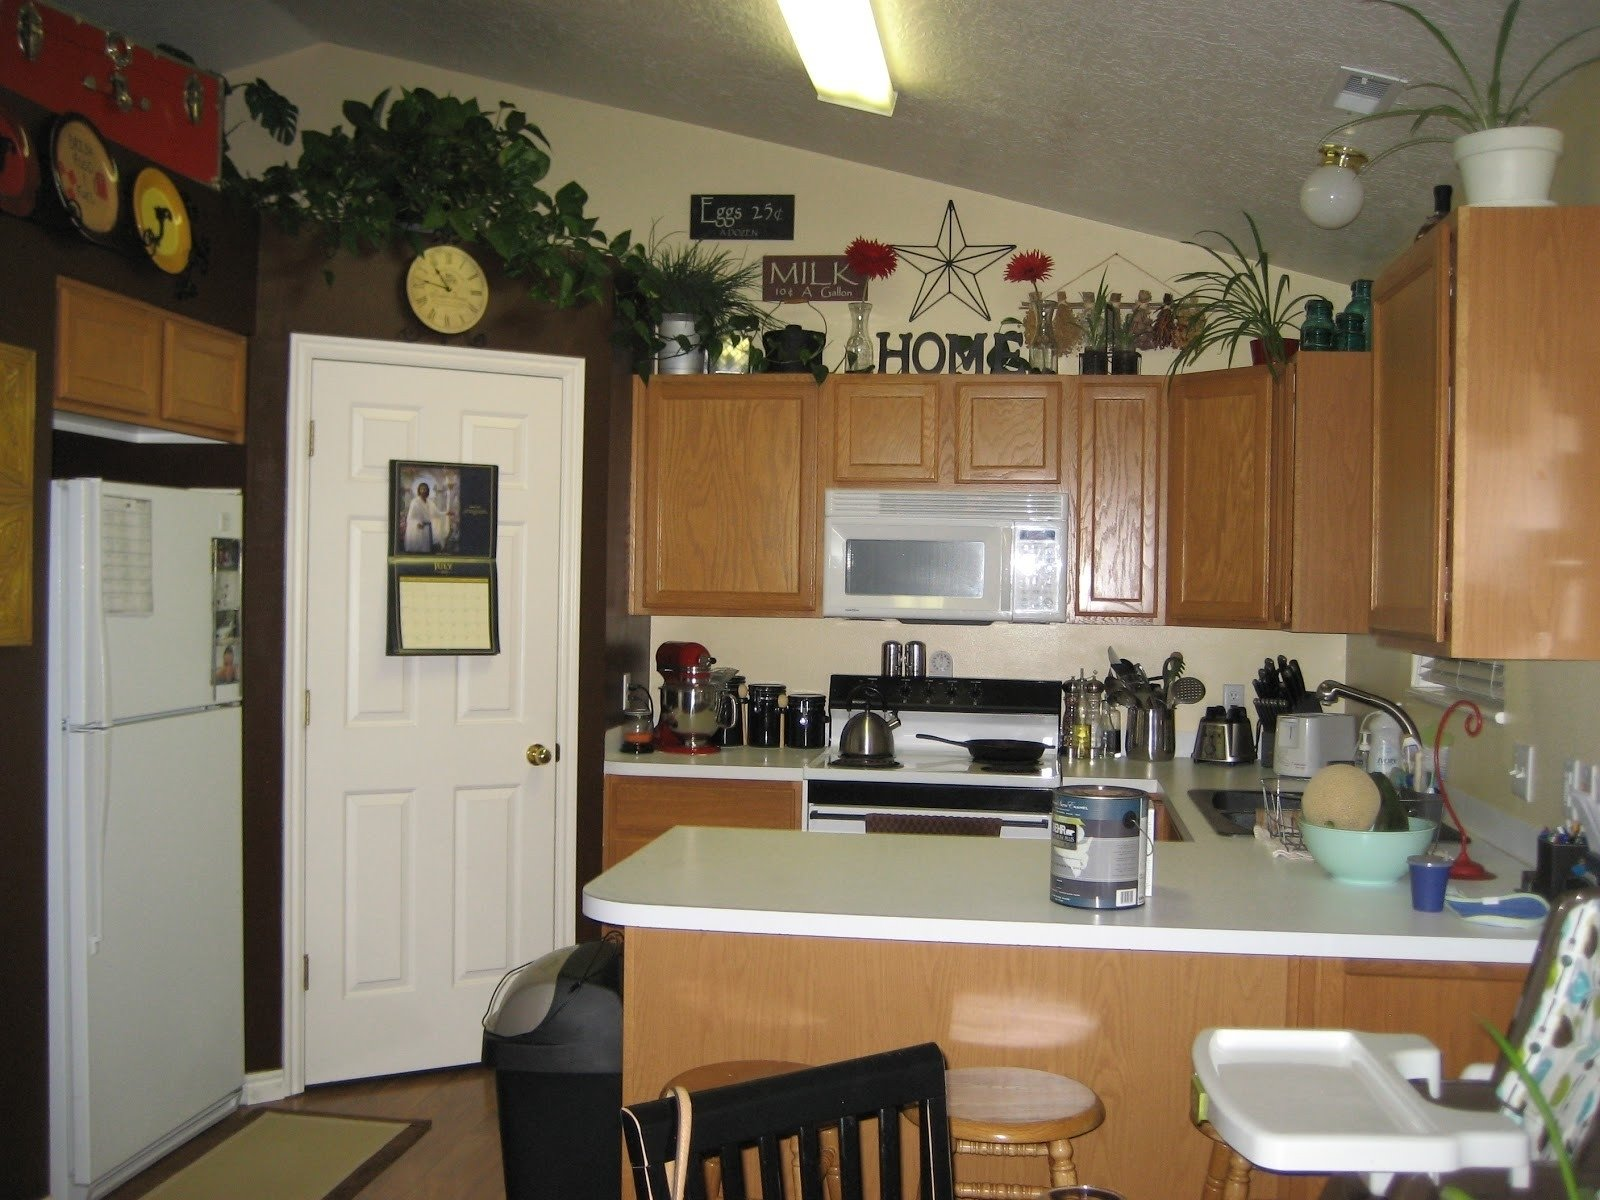 10 Trendy Ideas For Decorating Above Kitchen Cabinets ideas for decorating above kitchen cabinets elegant decorating 2020